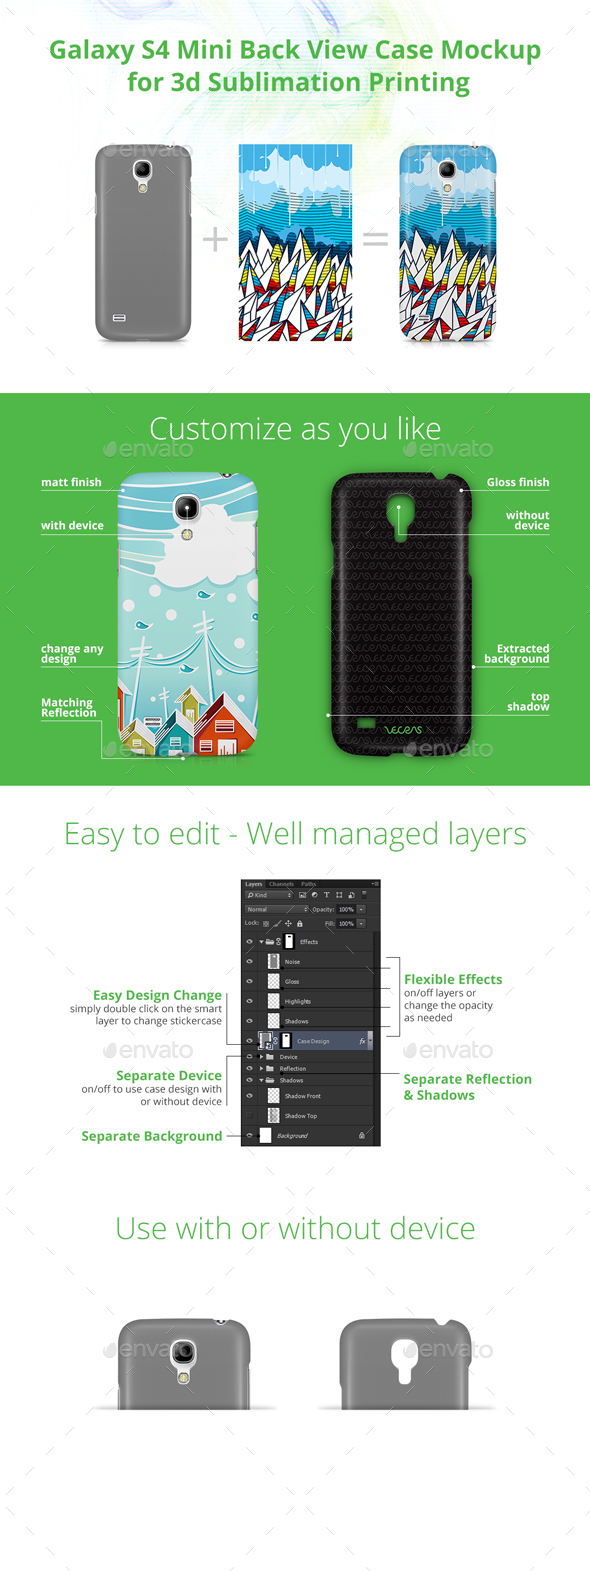 Galaxy S4 Mini Case Mockup for 3d Sublimation Printing - Back View - Mobile Displays